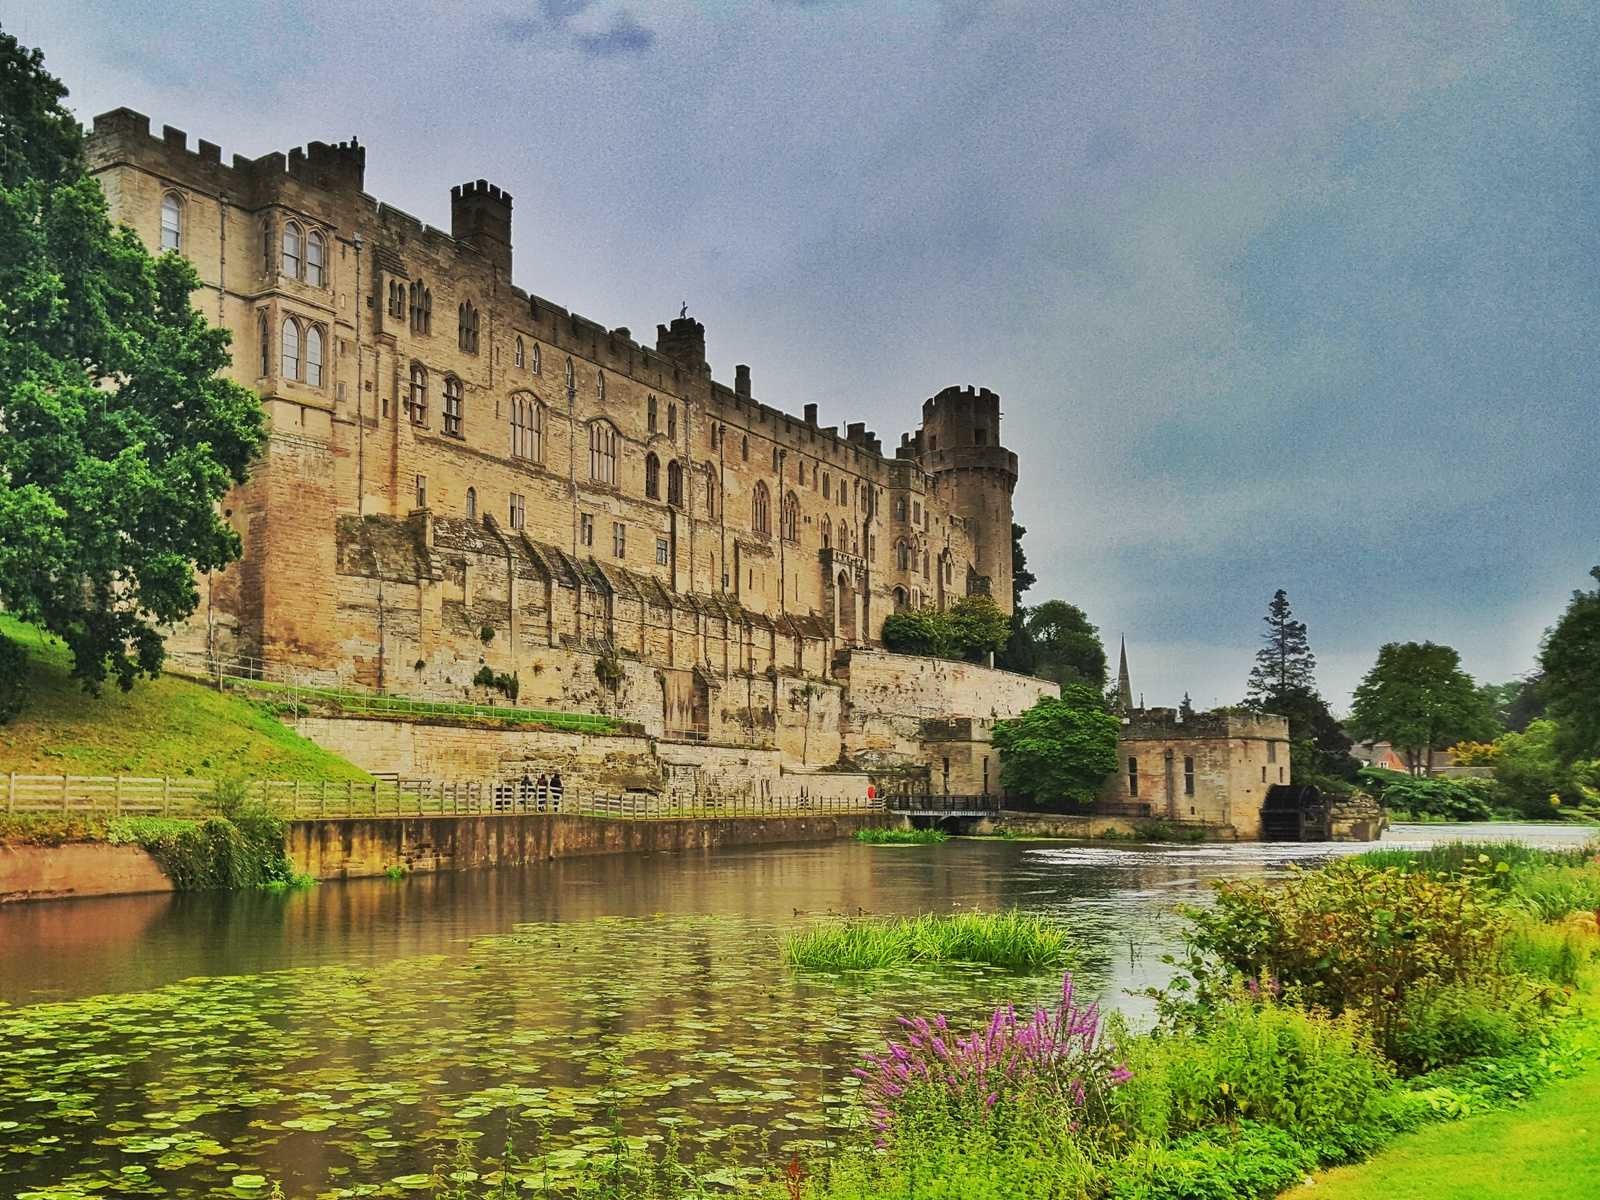 A view of Warwick Castle from across the moat